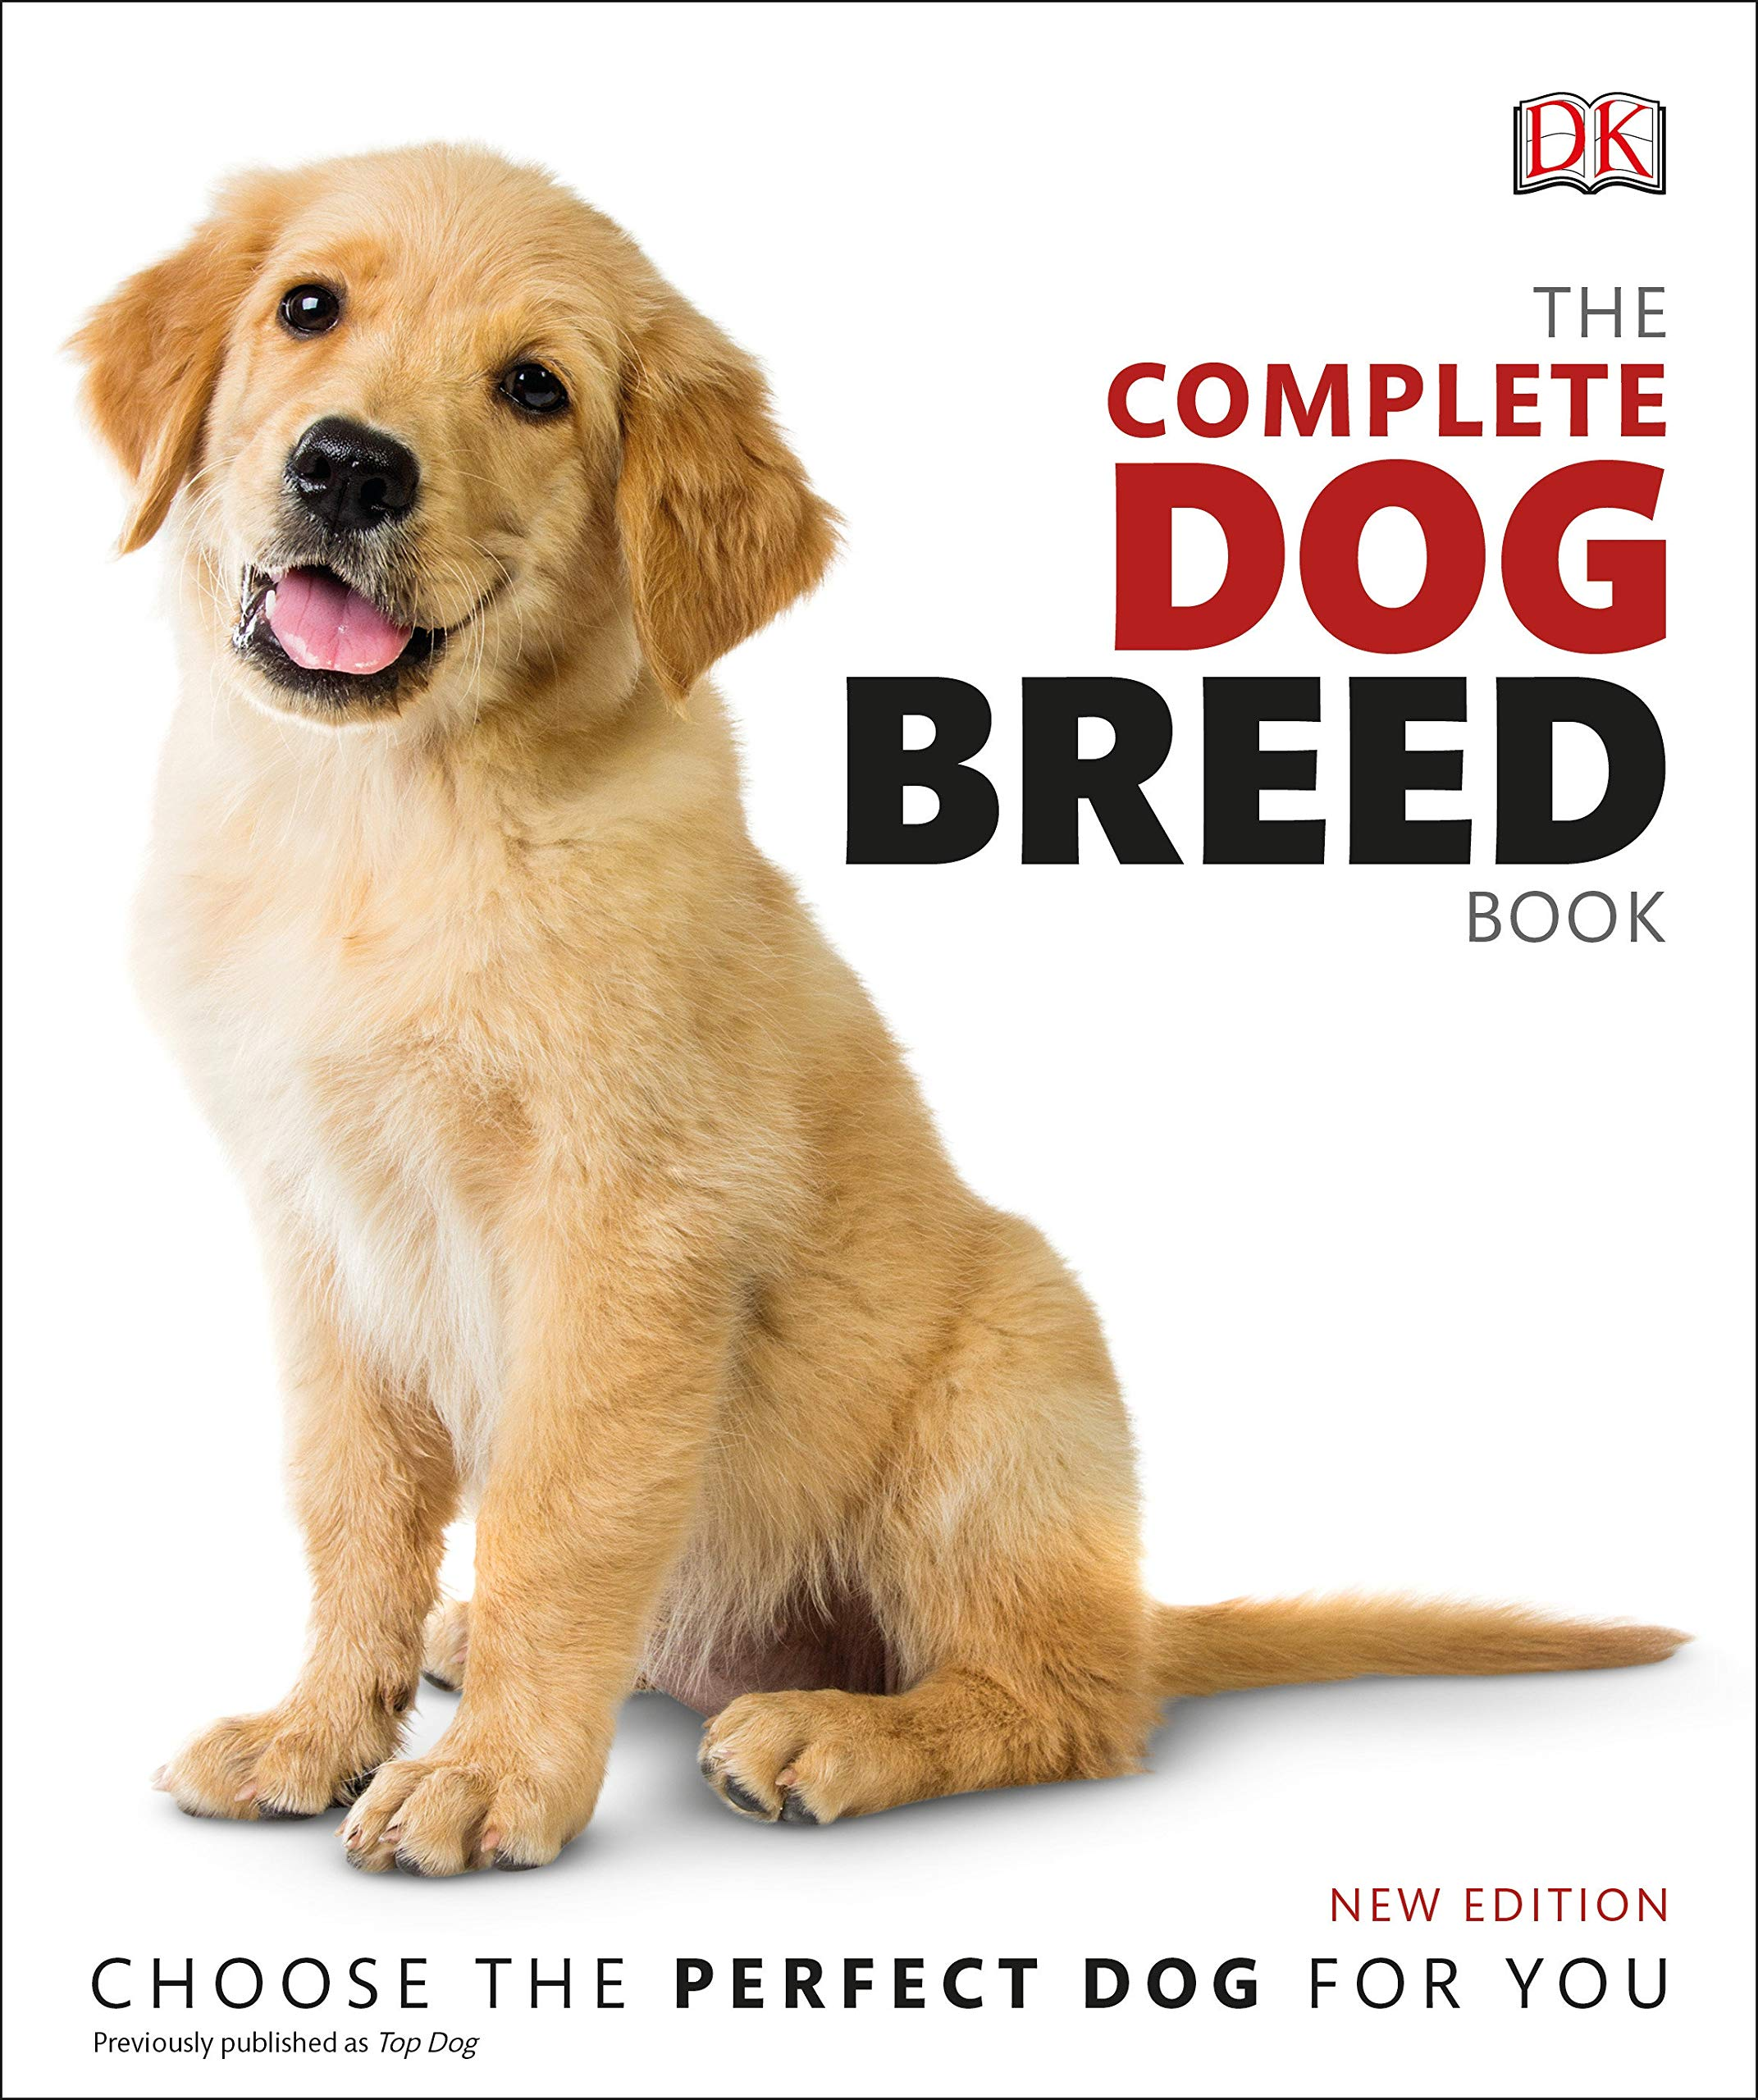 The Complete Dog Breed Book, New Edition: DK: 9781465491046: Amazon.com:  Books